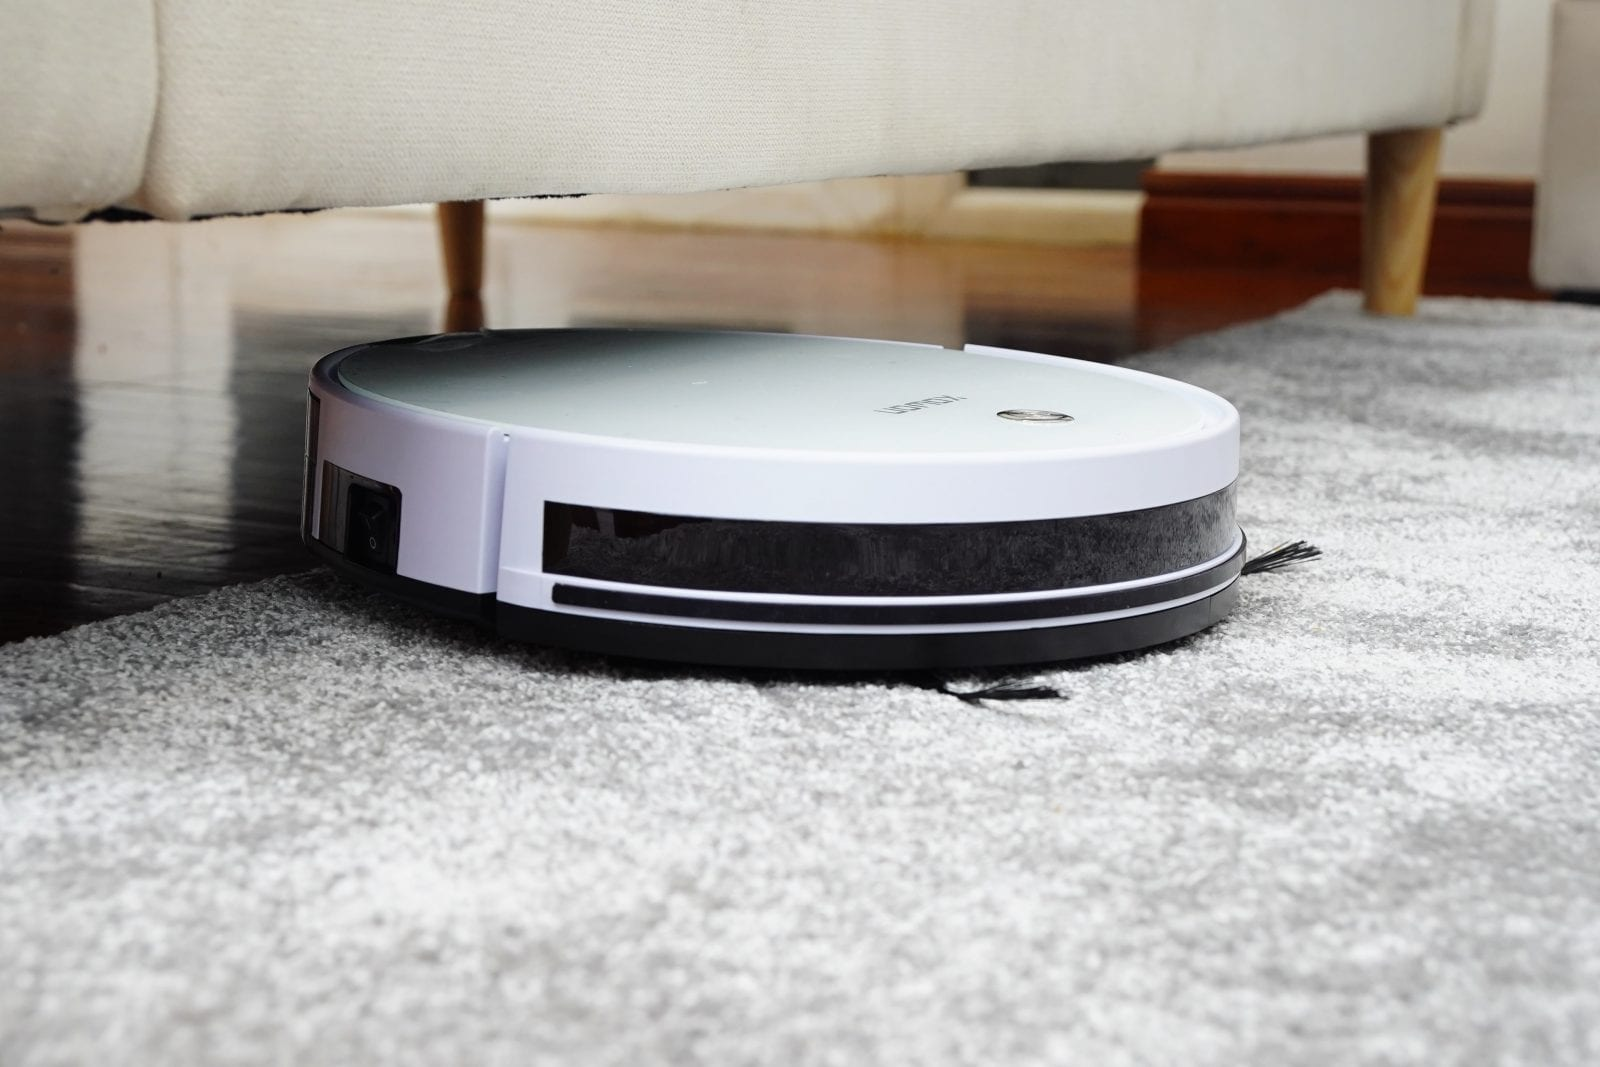 A photo of a robot vacuum cleaner - by Kowon Vn on Unsplash